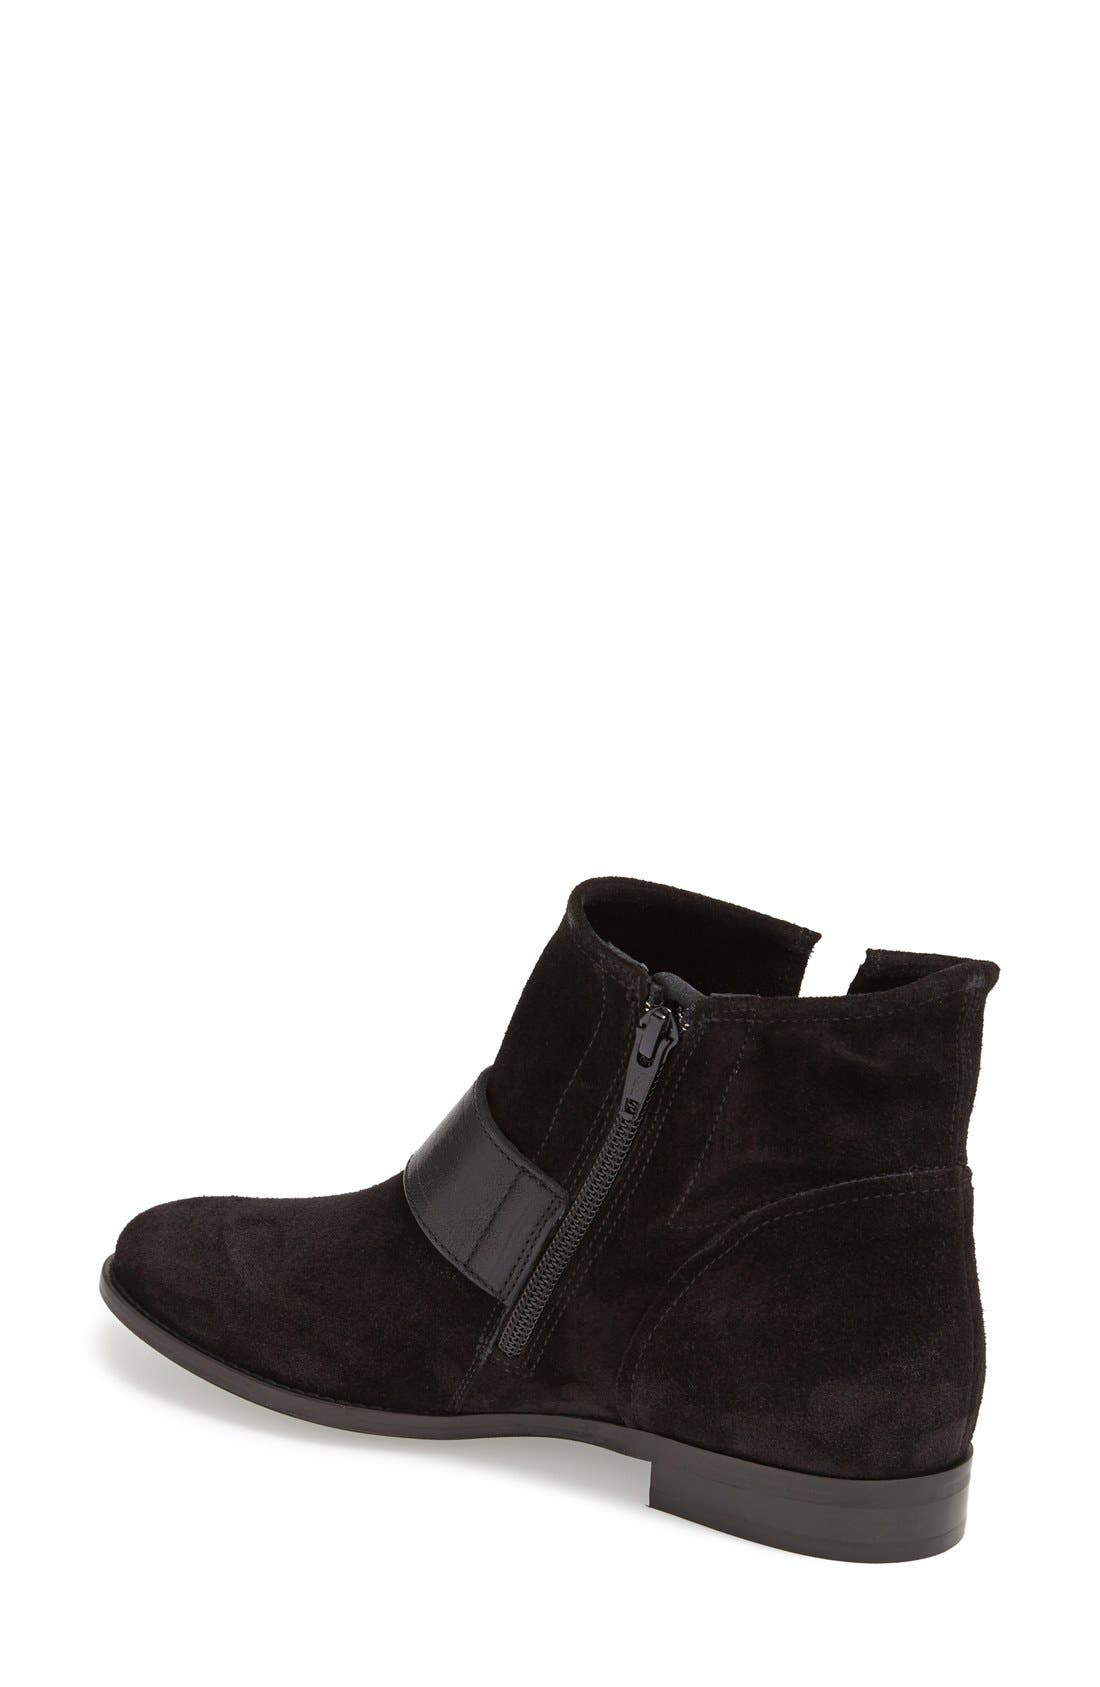 PAUL GREEN,                             'Bixby' Leather Bootie,                             Alternate thumbnail 4, color,                             009